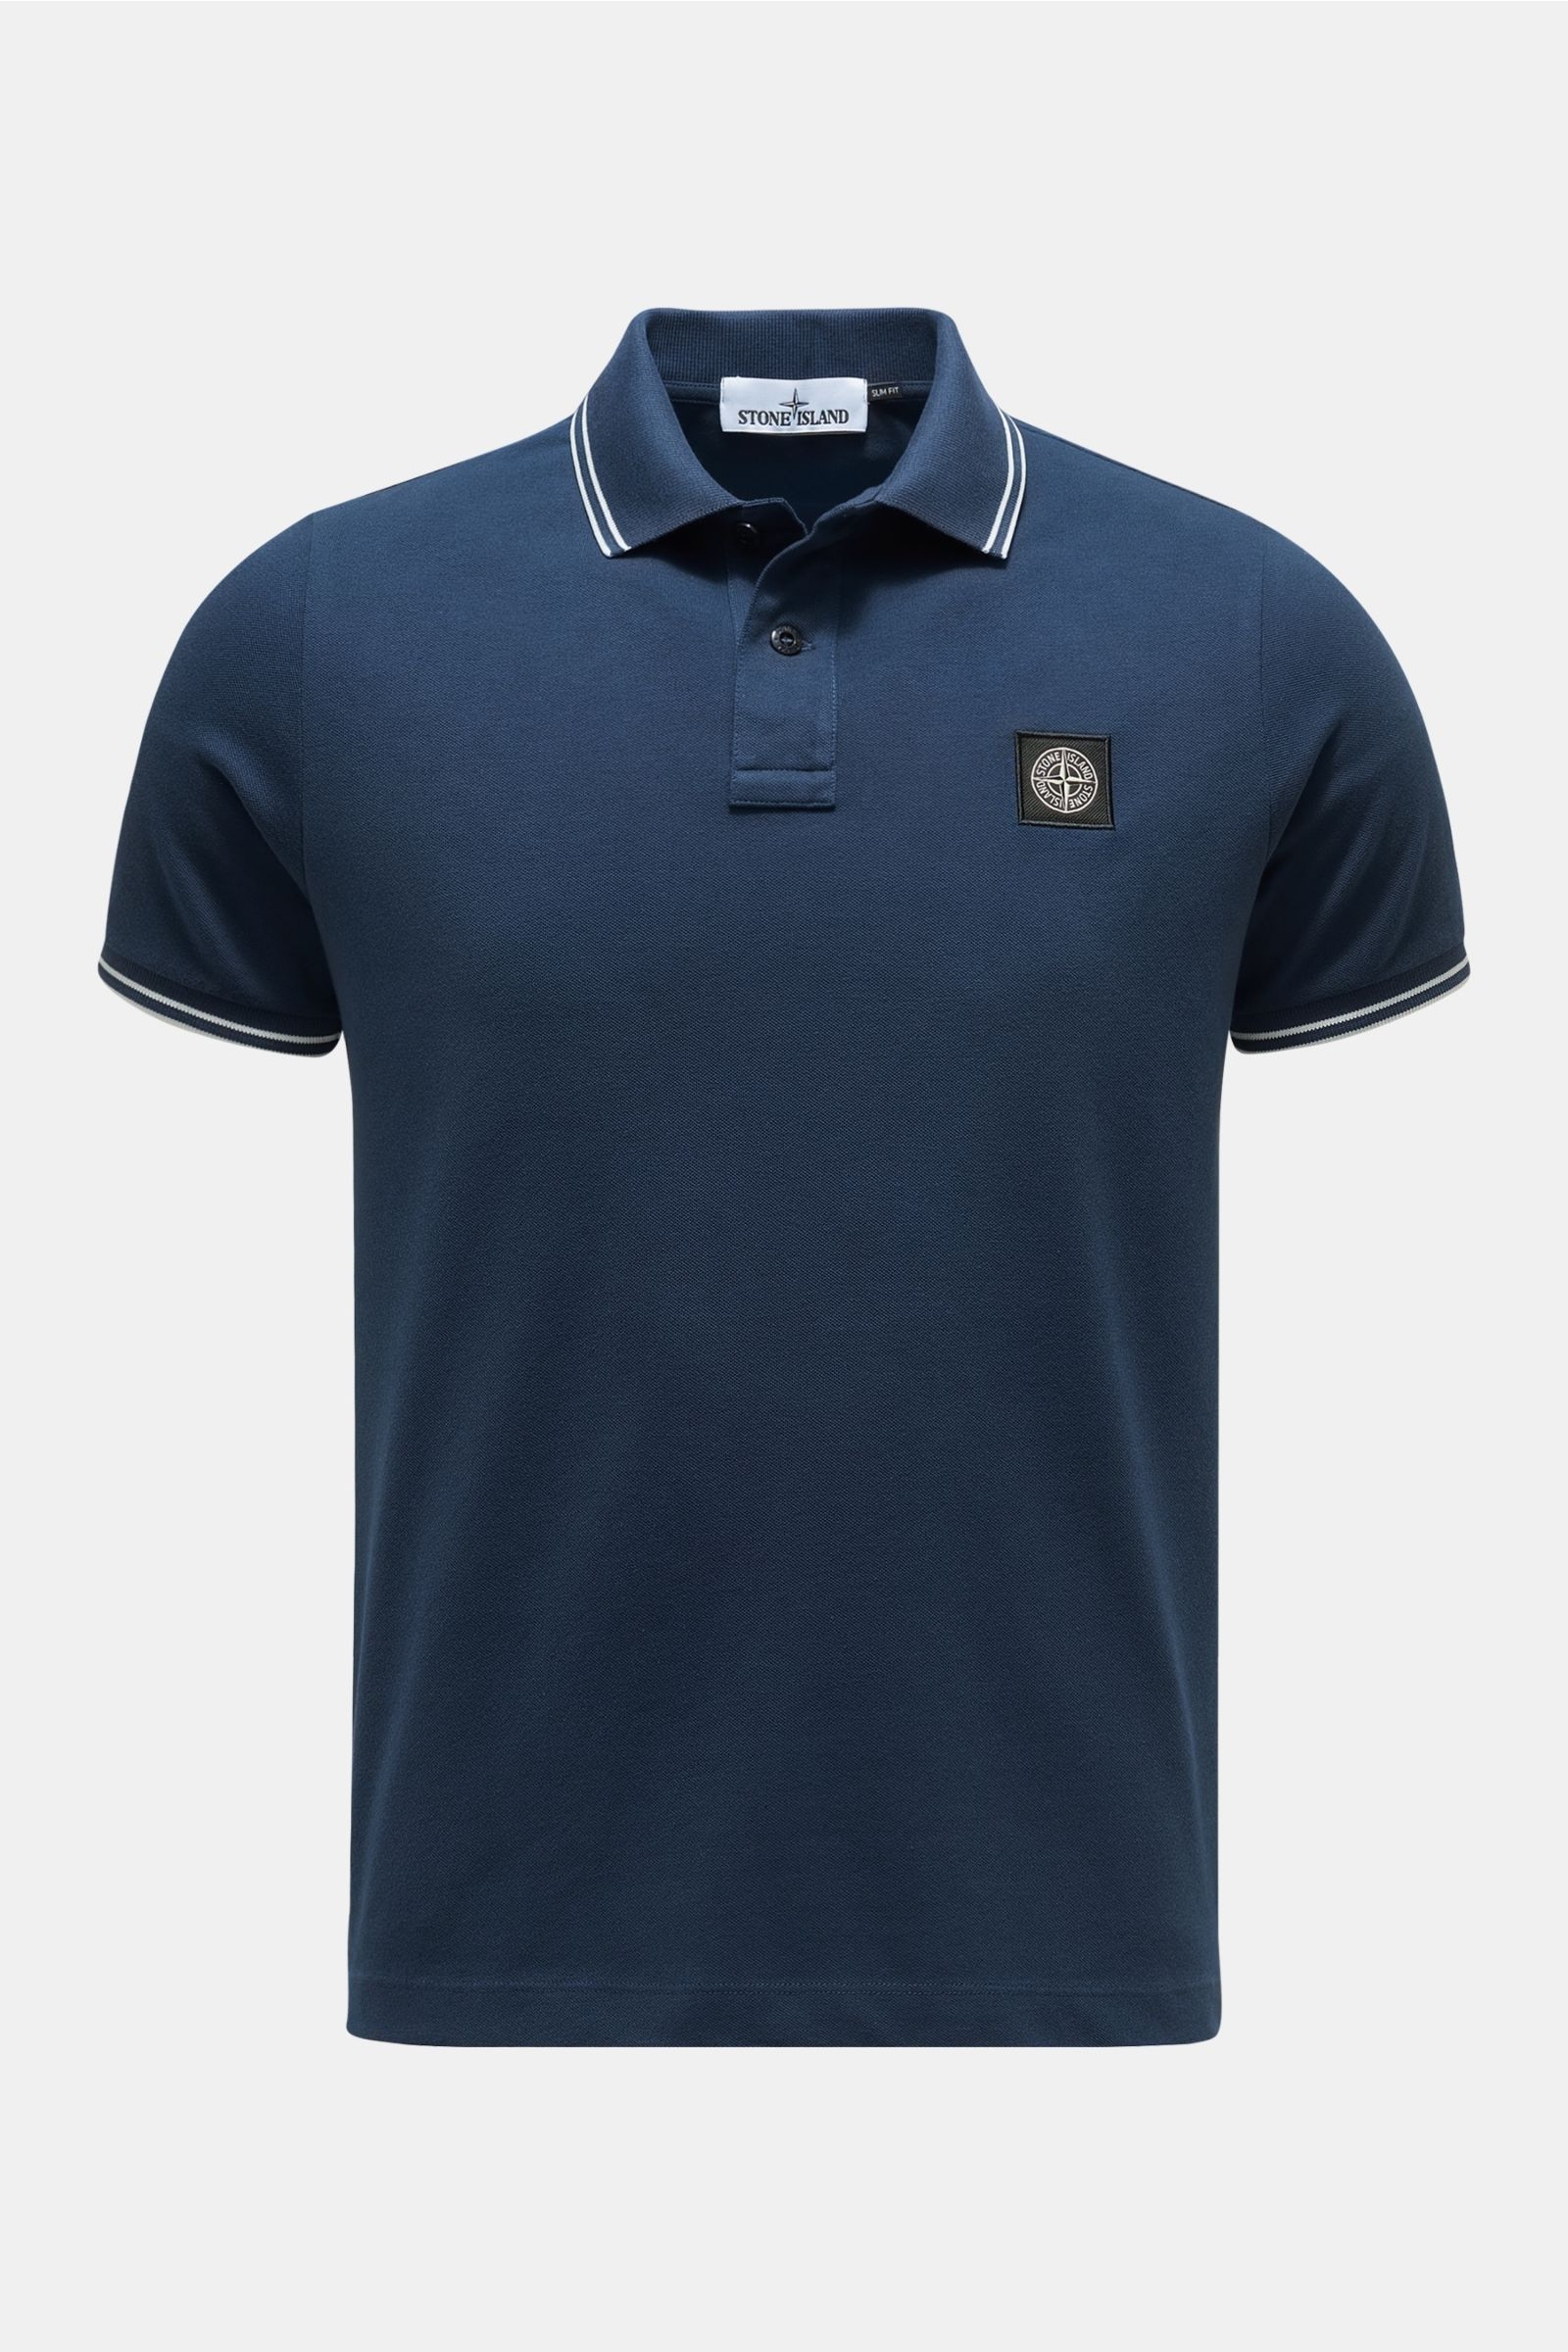 Polo shirt dark blue